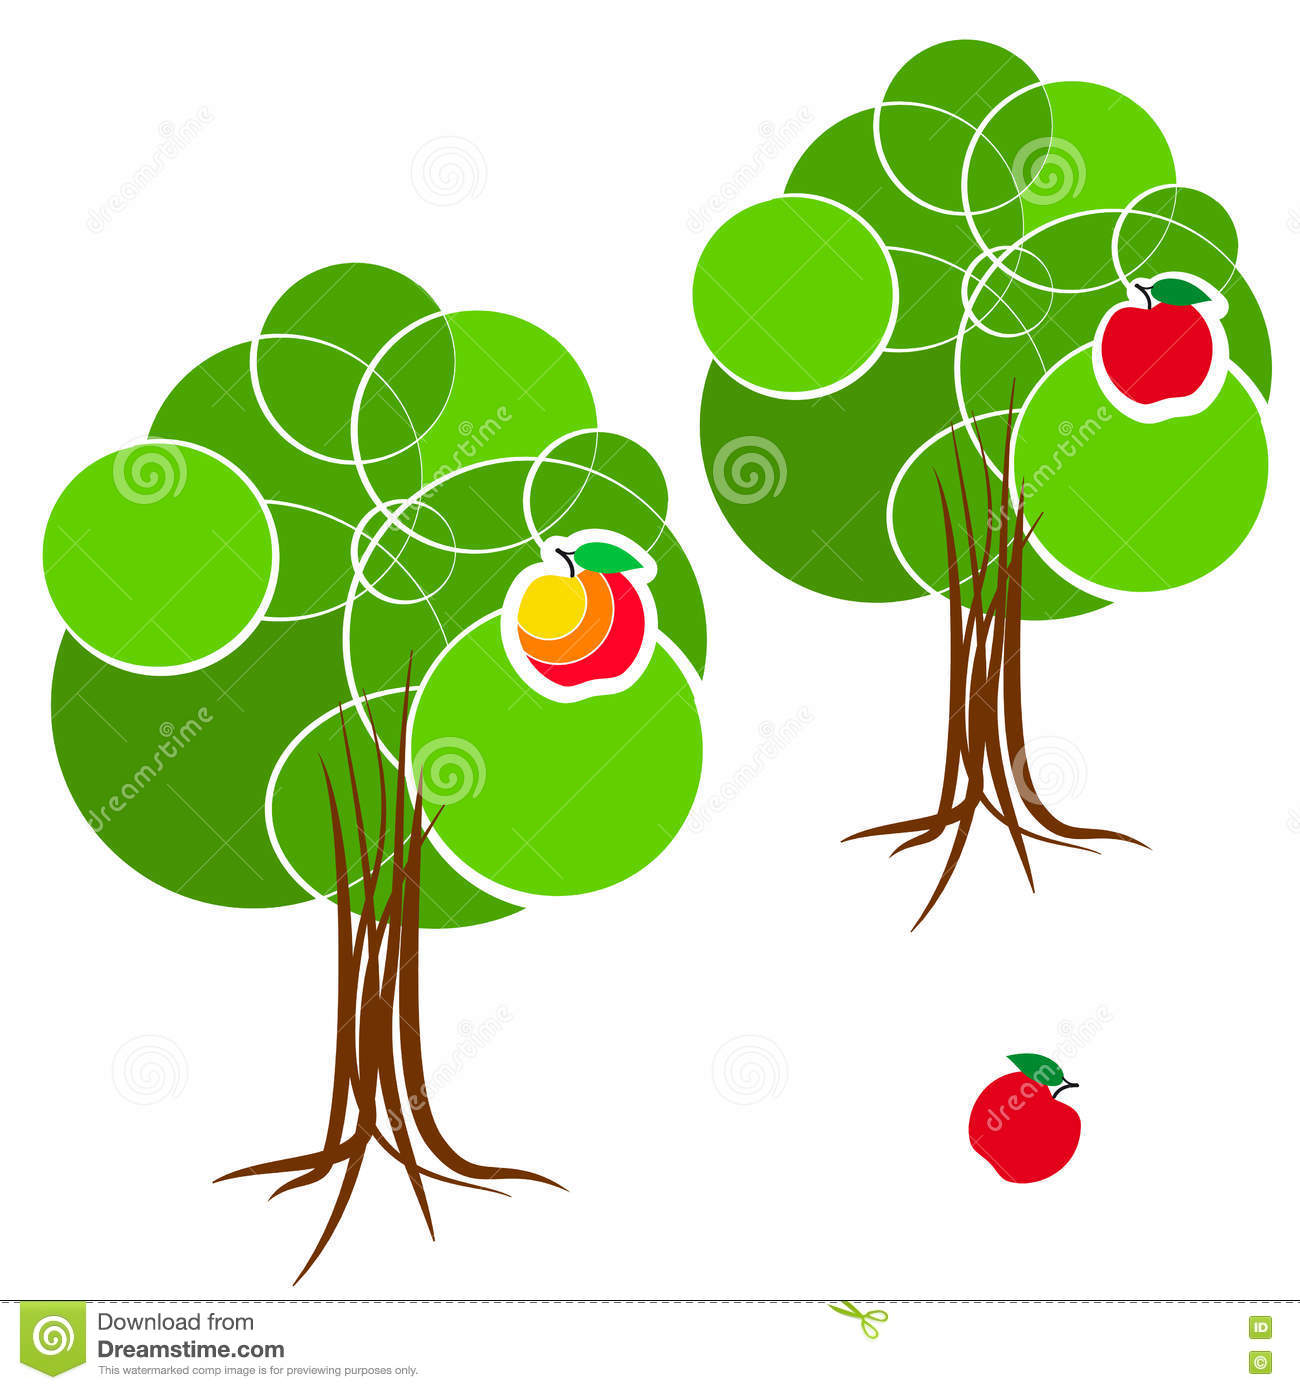 Cartoon Green Summer Tree With A Crown Of Circles Different.